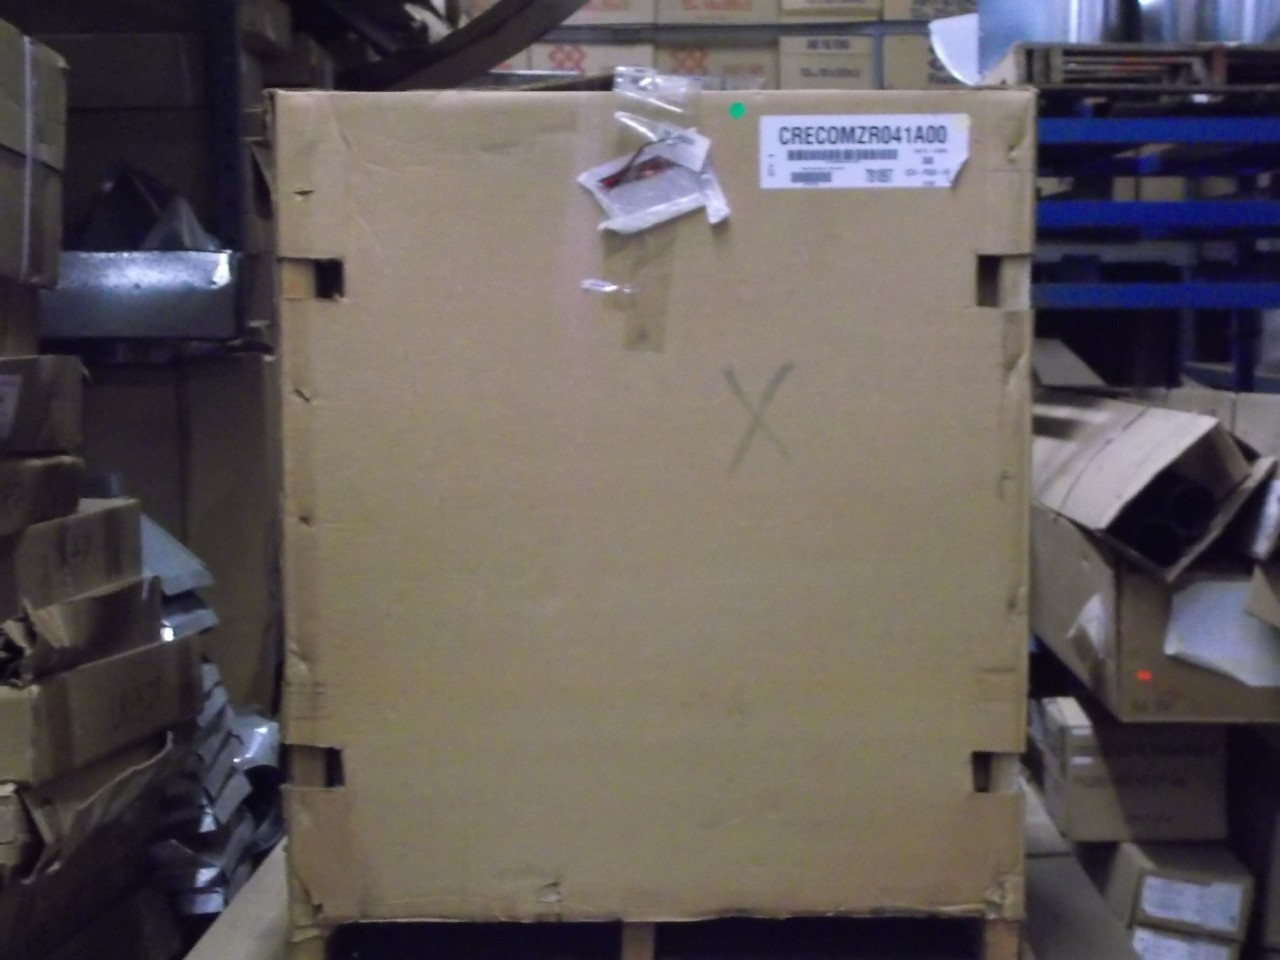 Bard Hvac Wiring Diagrams Economizer Carrier Crecomzr041aoo Integrated Shurail Store